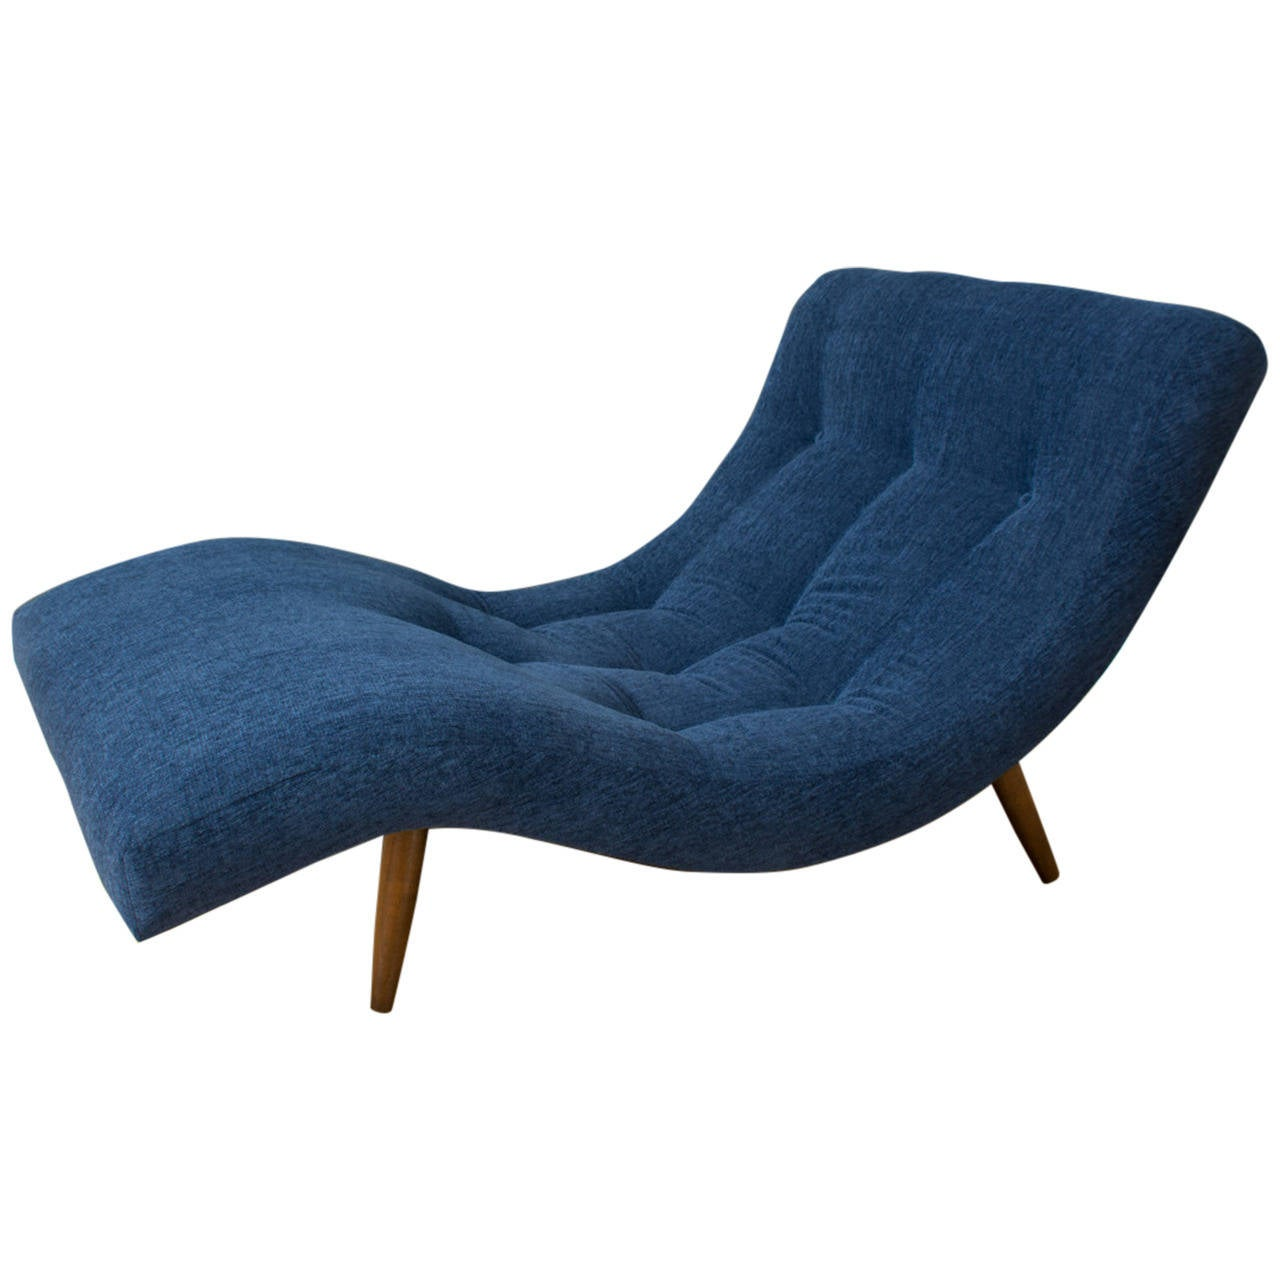 Vintage mid century chaise lounge chair by adrian pearsall for Daybed bench chaise